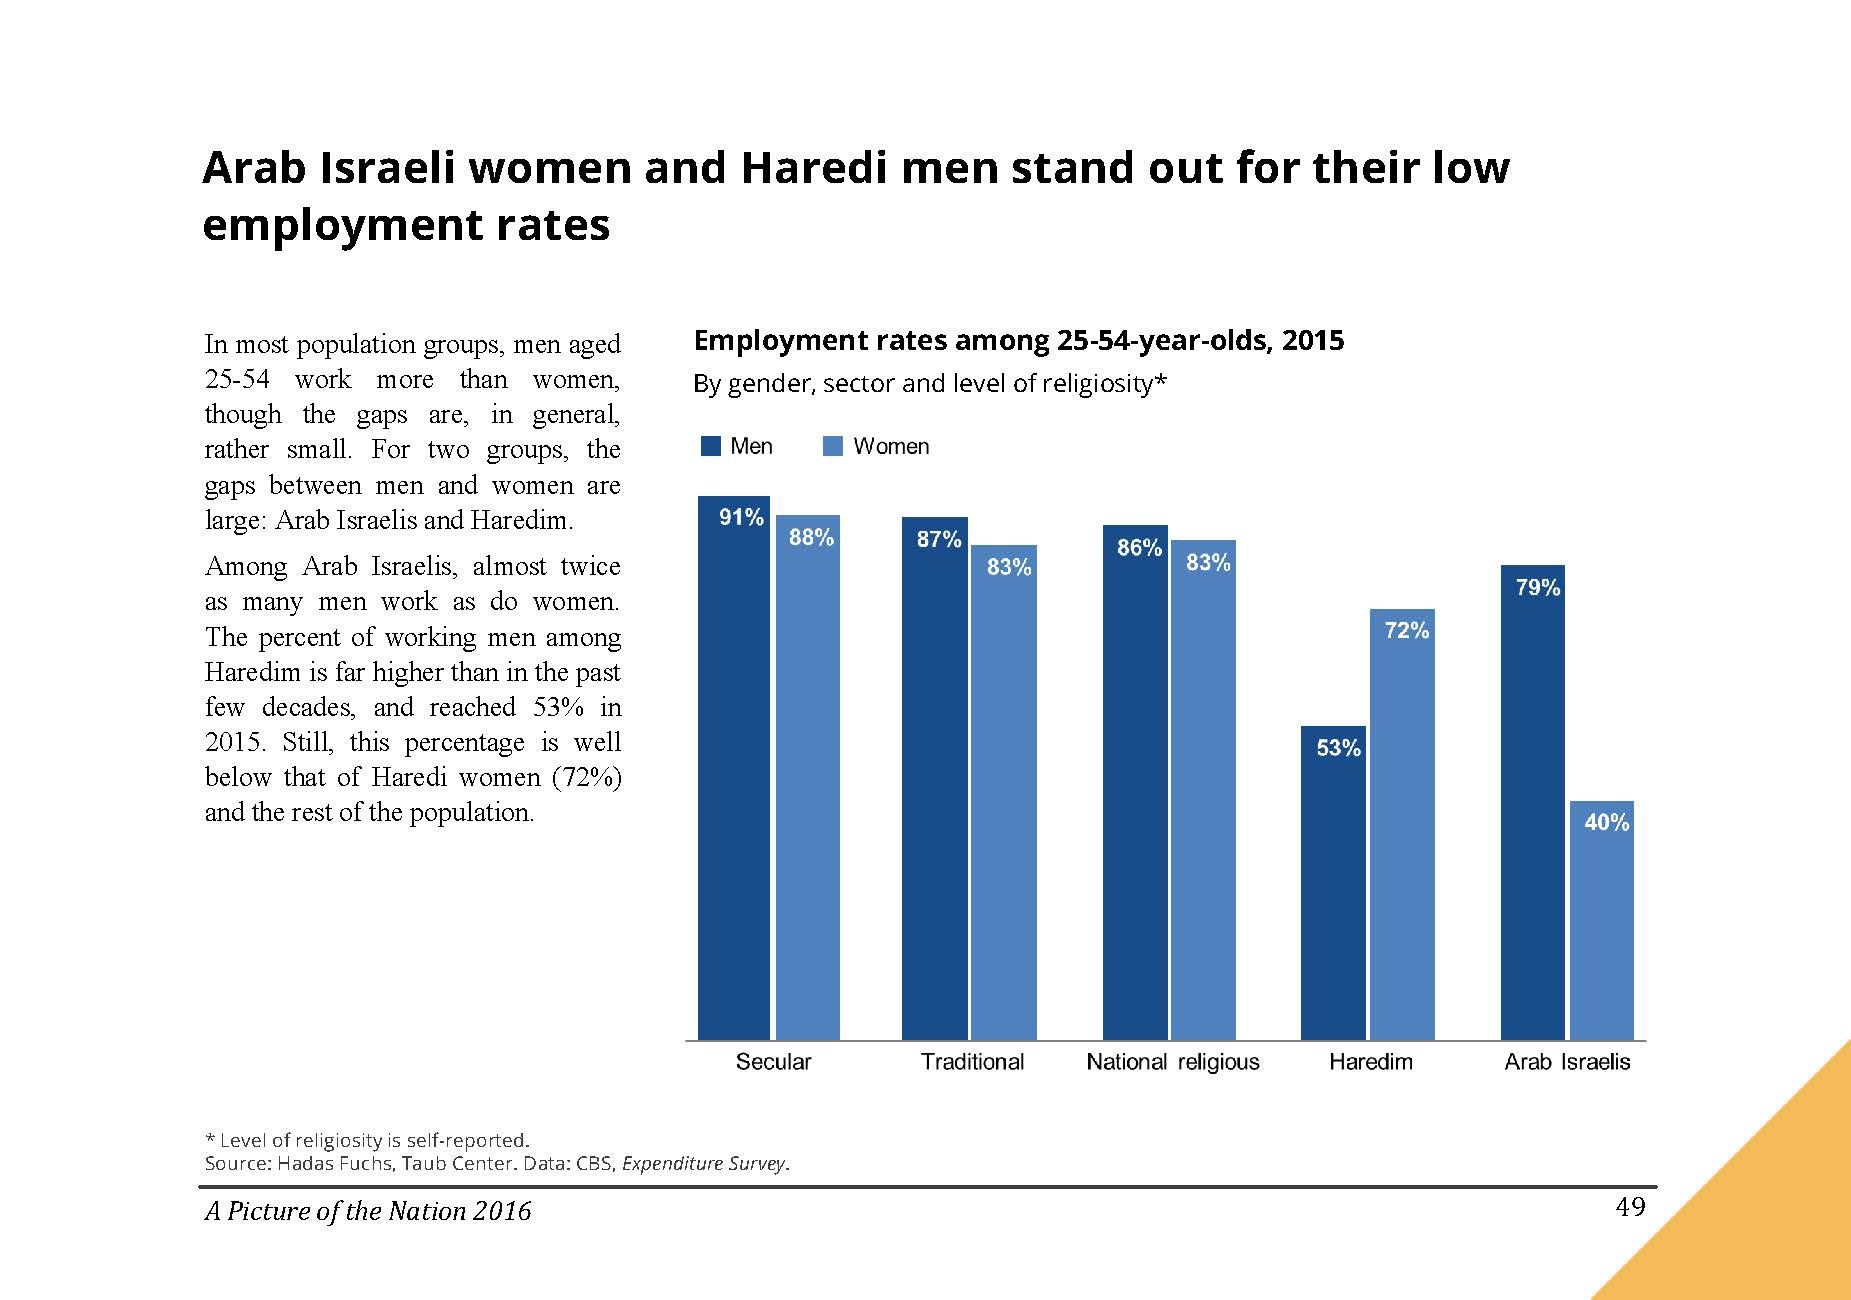 Arab Israeli women and Haredi men stand out for their low employment rates in Israel